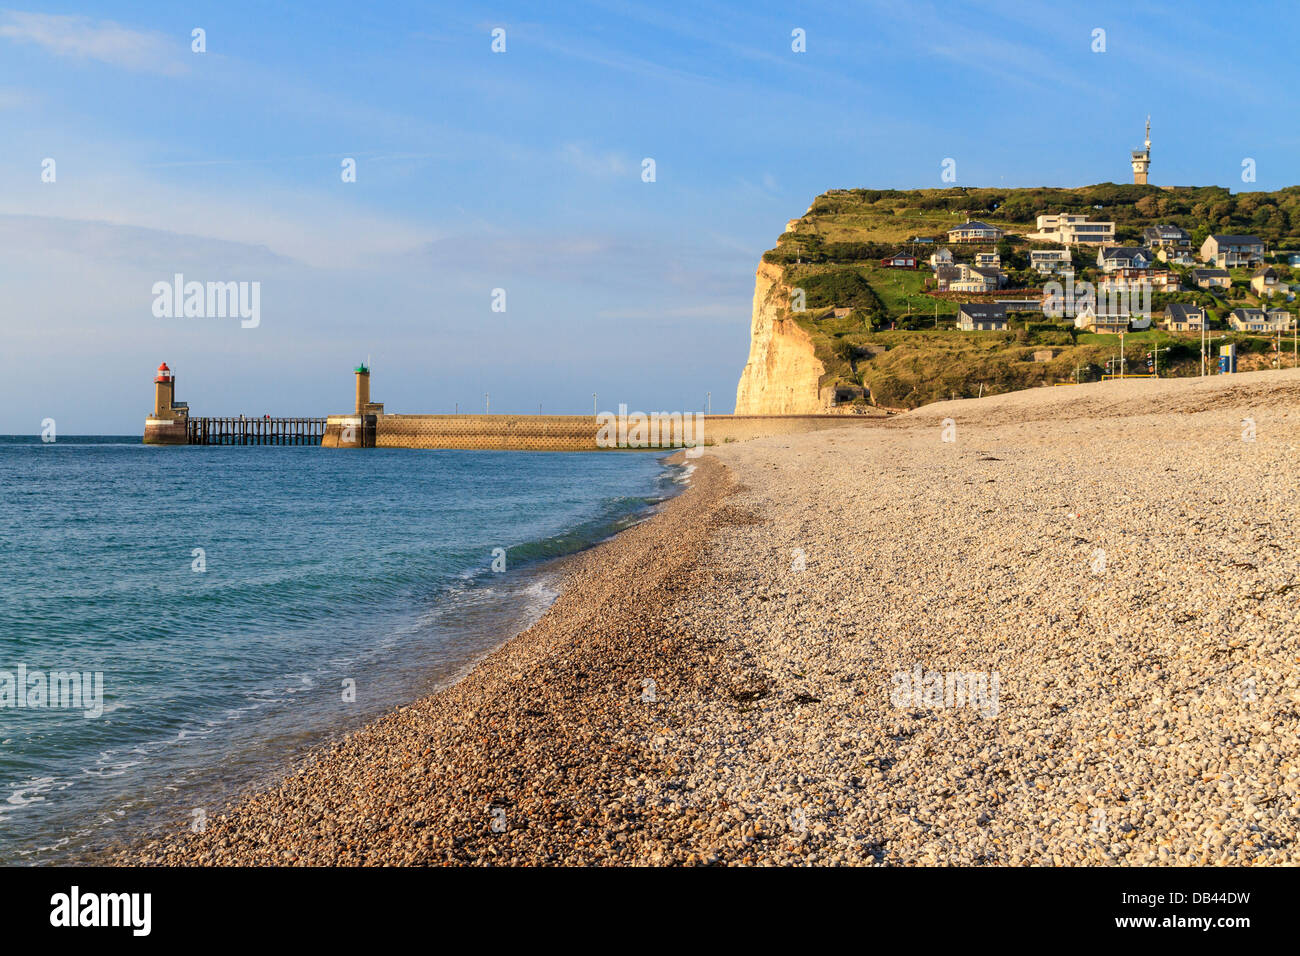 Normandy Coast near Fecamp, France - Stock Image